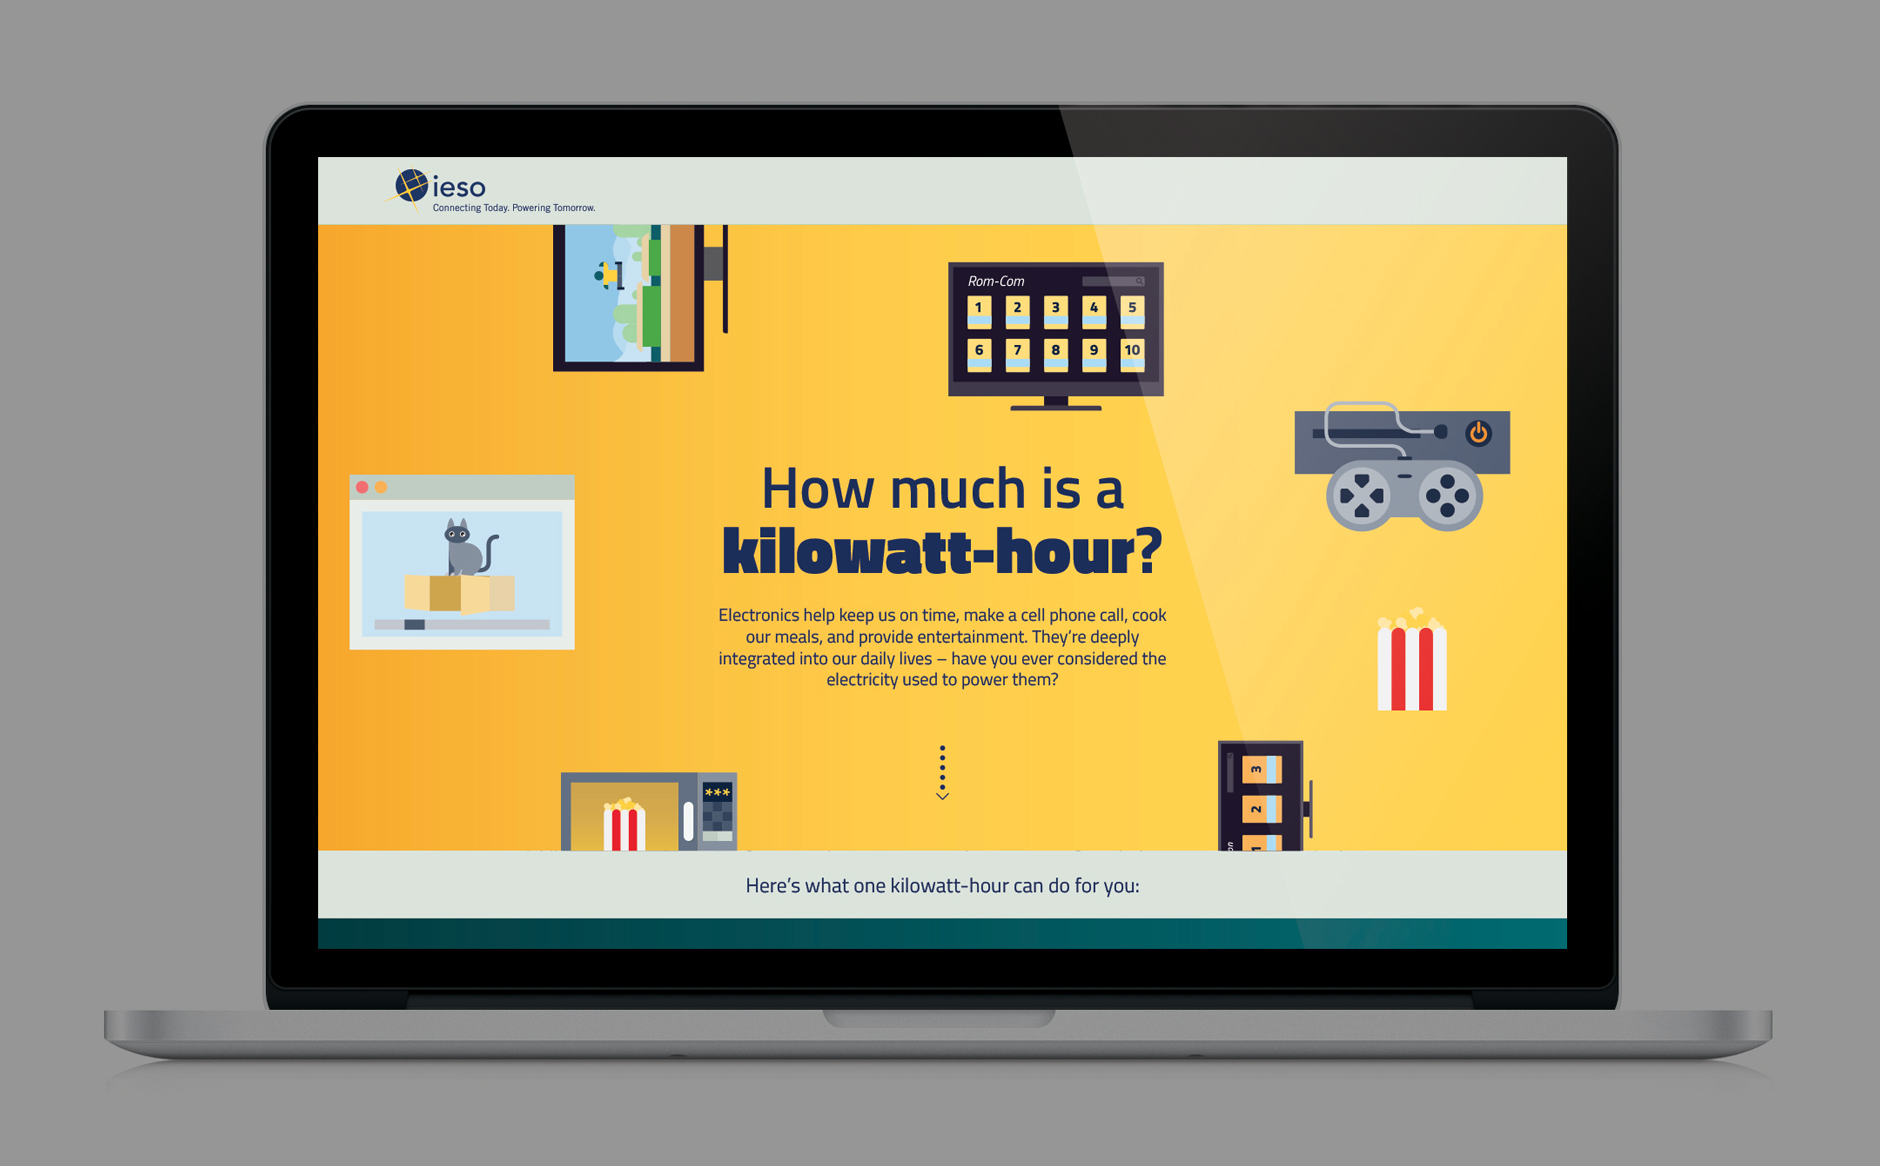 IESO 1KWH website desktop